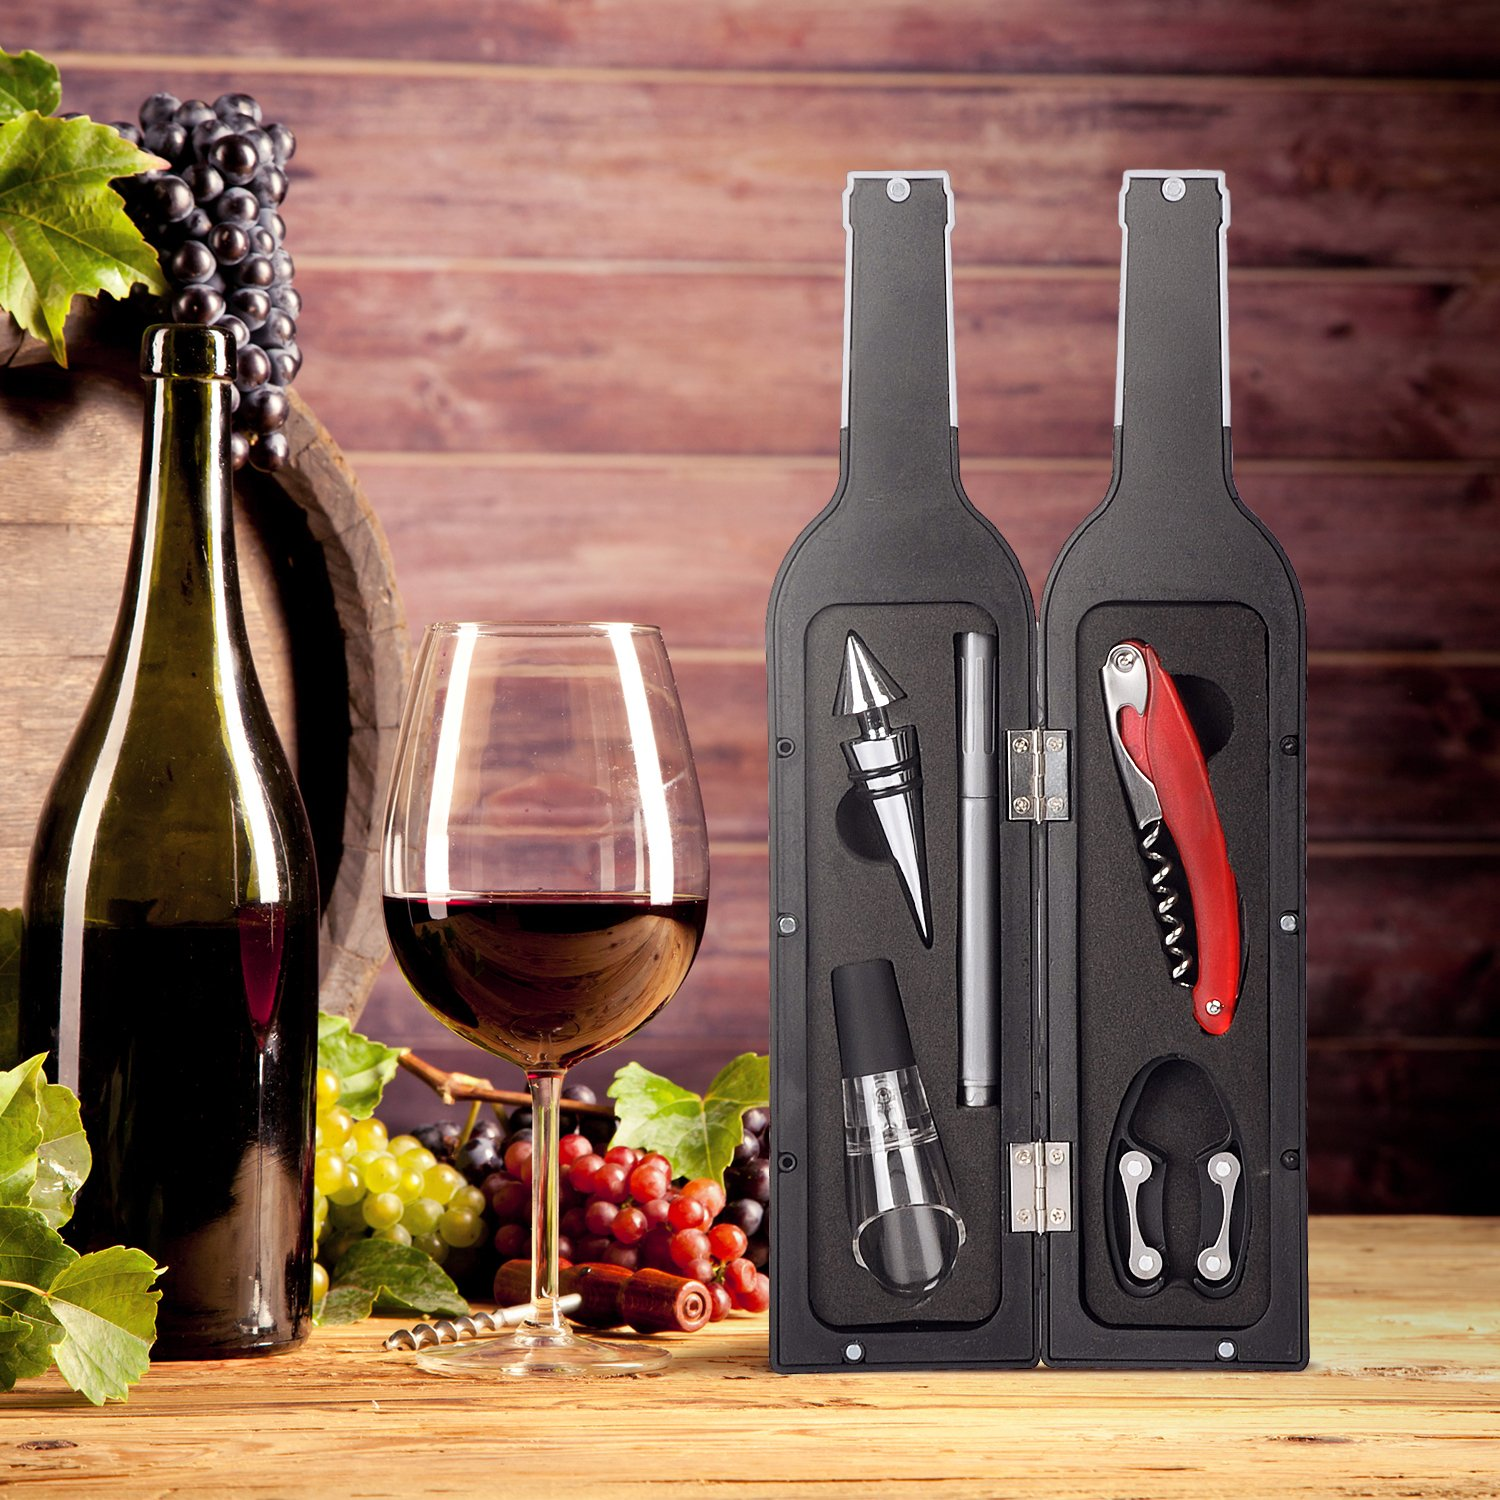 Wine Accessory Gift Set - Deluxe Wine Bottle Corkscrew Opener, Stopper, Aerator Pourer, Foil Cutter, Glass Paint Marker w/Reusable Drink Stickers in Gift Box, Wine Gifts for Wine Lover by Friend of Vines (Image #6)